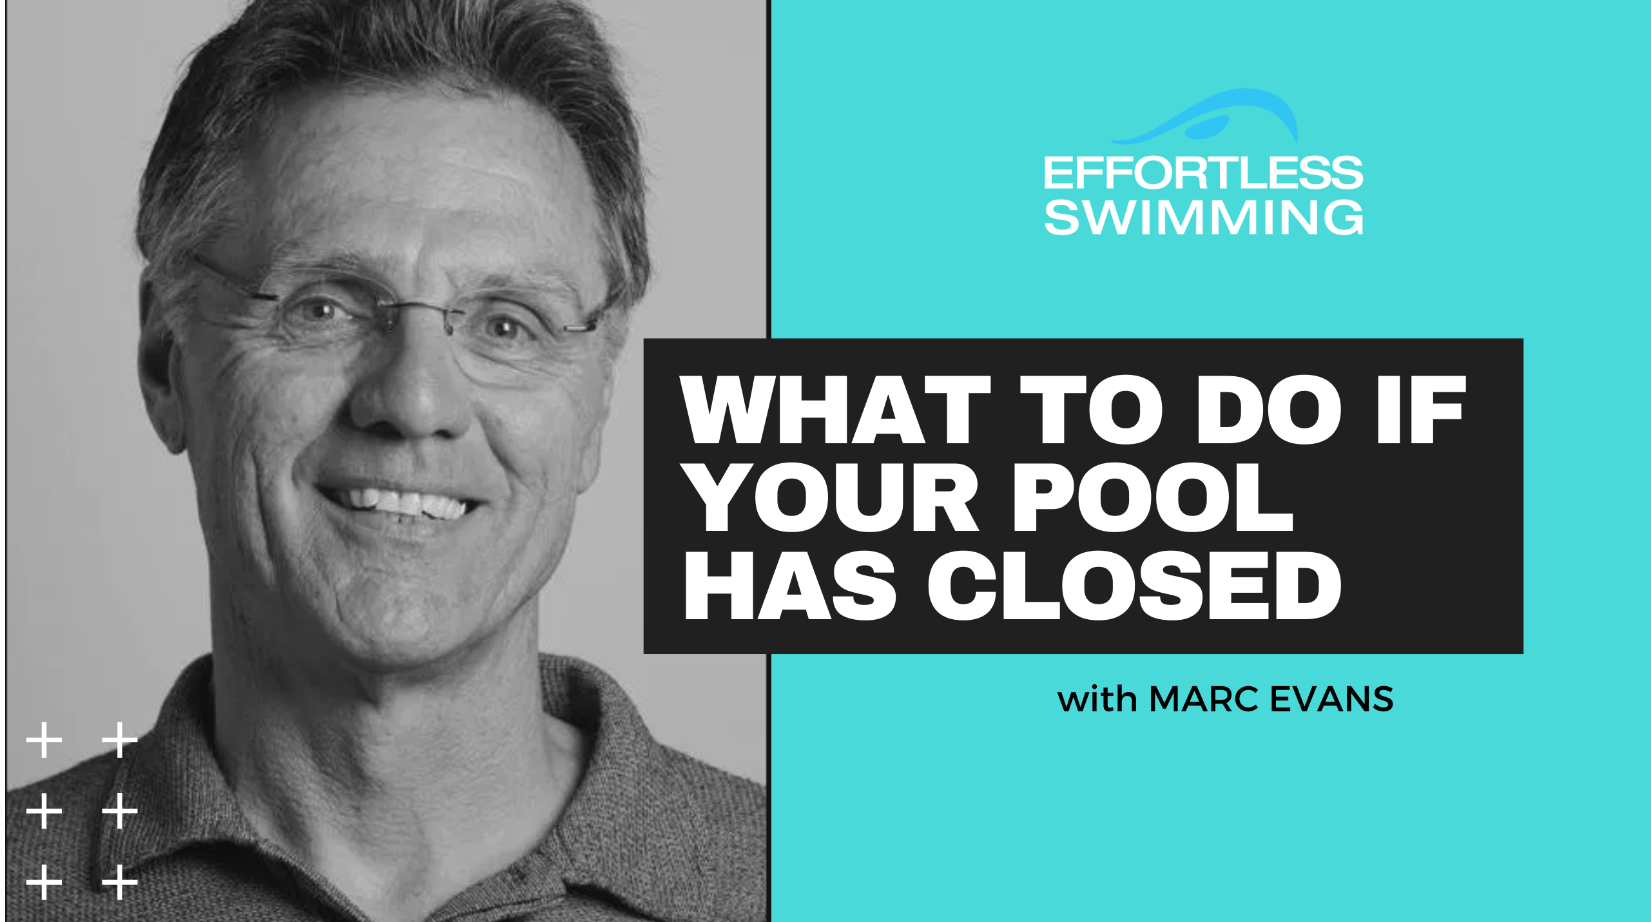 What To Do If Your Pool Has Closed with Marc Evans